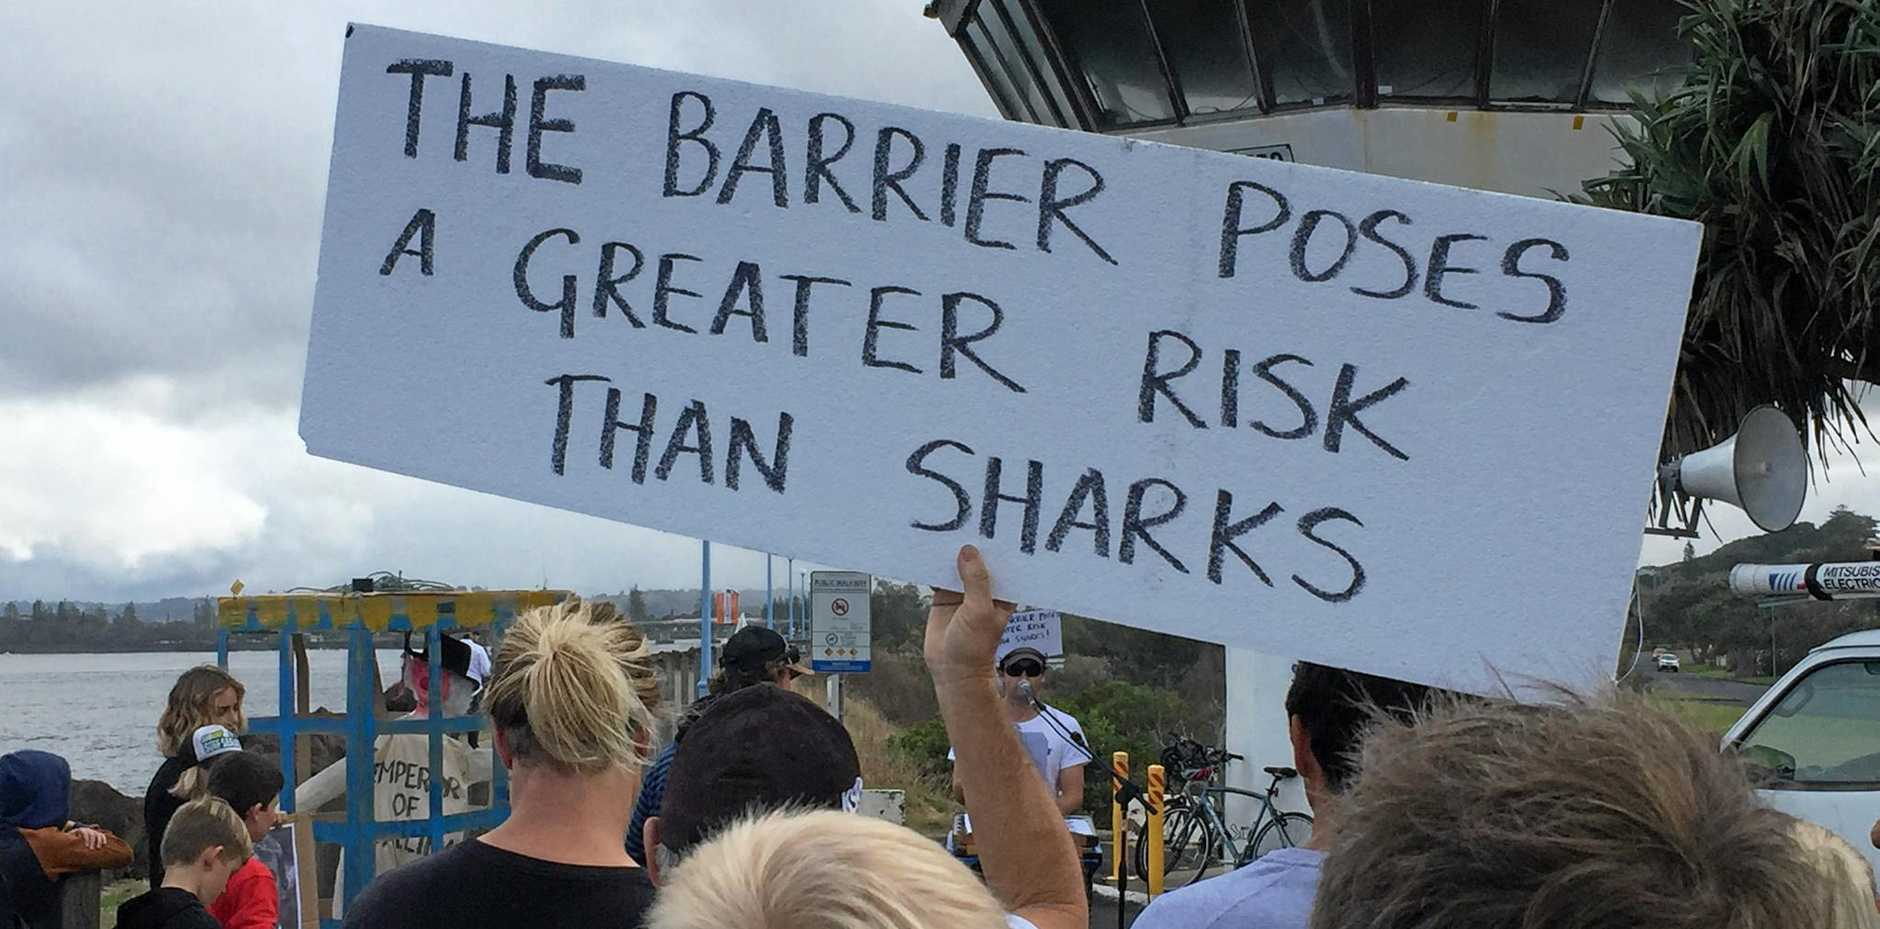 Protestors gathered near the marine rescue tower in Ballina to oppose DPI plans to install a shark eco-net barrier along Lighthouse Beach